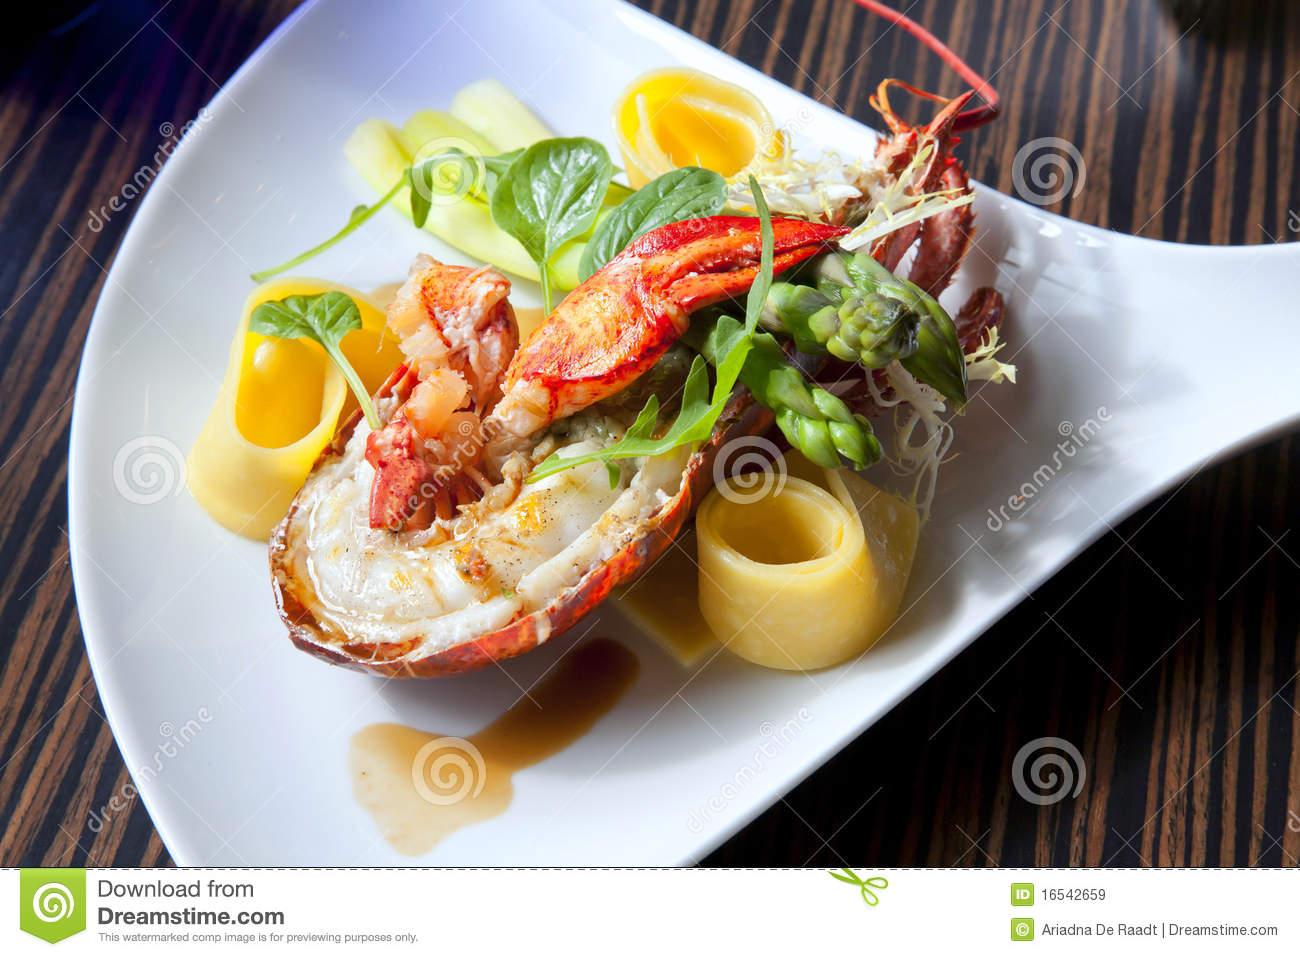 Lobster Plate Royalty Free Stock Images - Image: 16542659